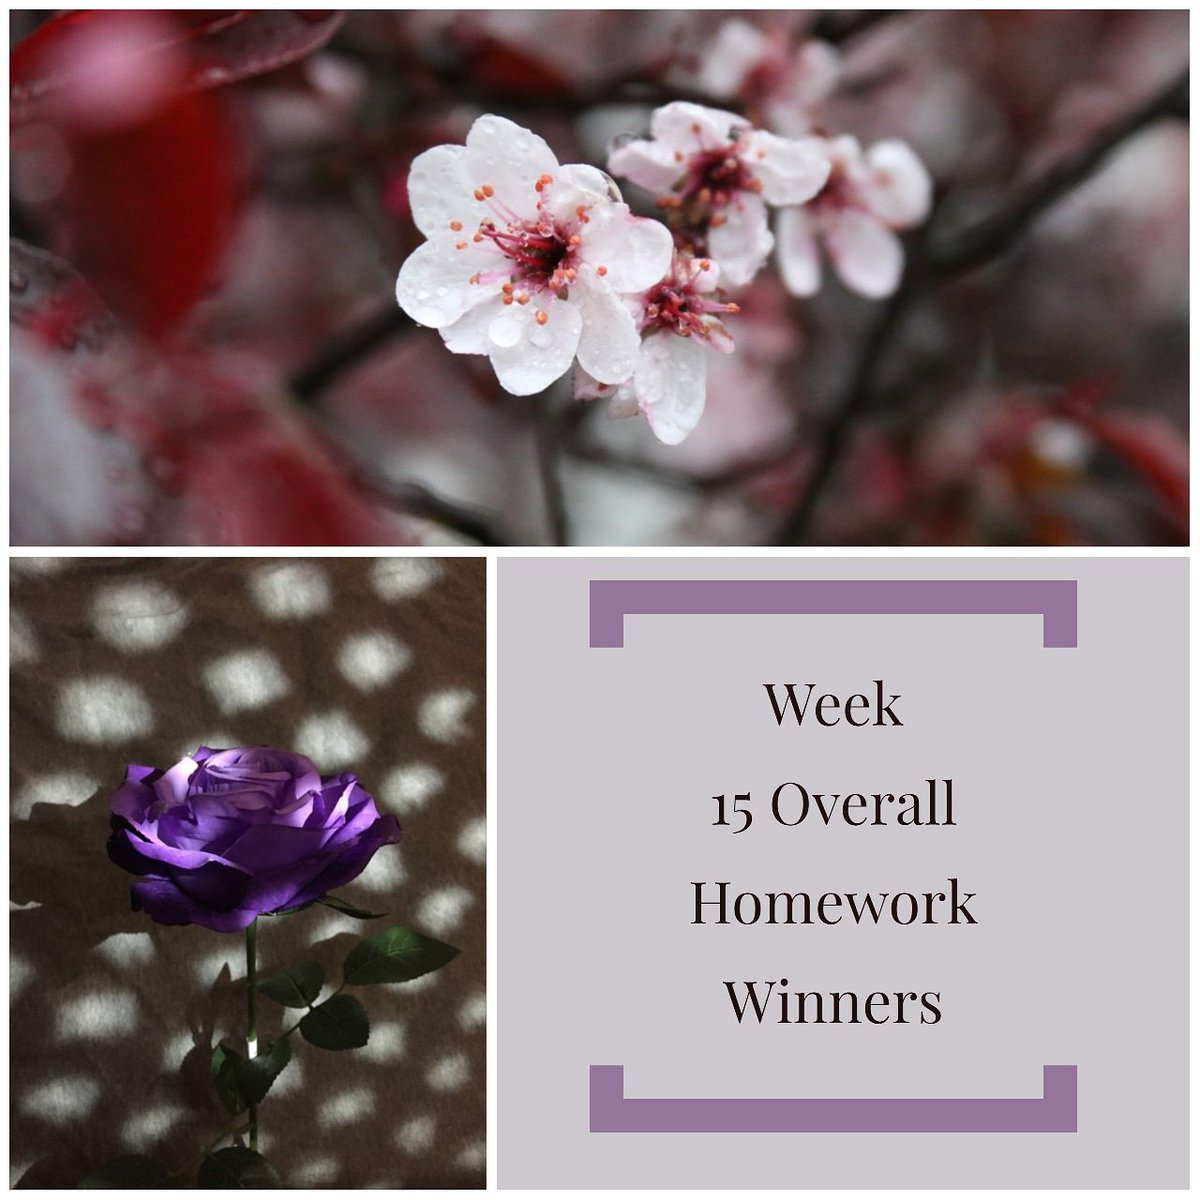 Congratulations Andy & Emilie, the community and your peers voted your photographs at the top this week. Thank you to everyone that voted! #bemoorevisual #beMooreengaging #bemoore #photography #homeworkwinners #highschoolphotographer pic.twitter.com/iWekT8rdHi